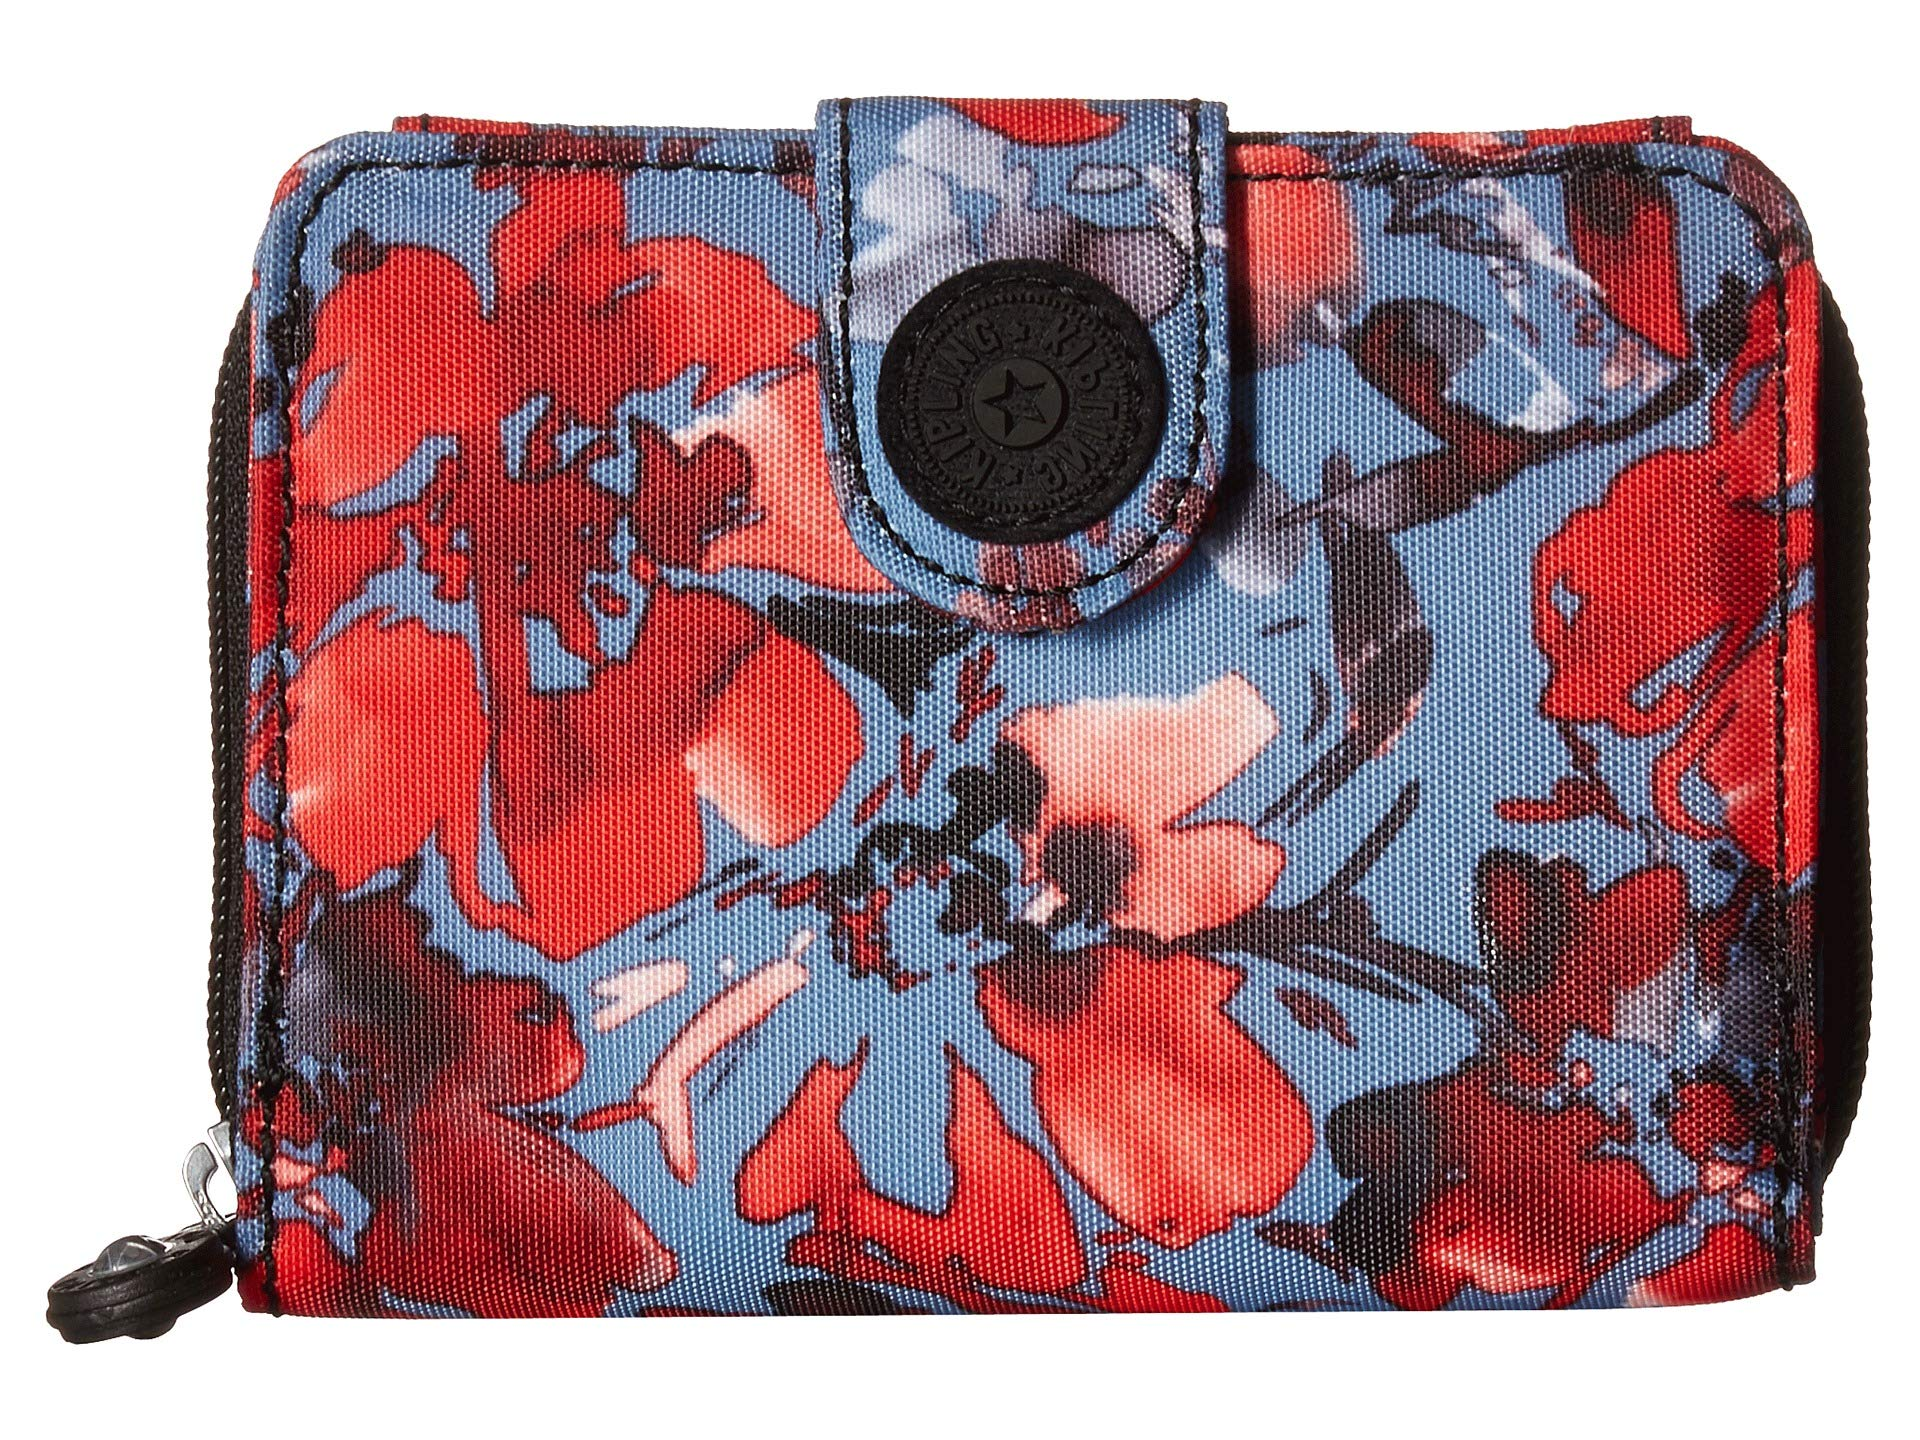 Print Money New Festive Kipling Flower fwTSnXO1xq